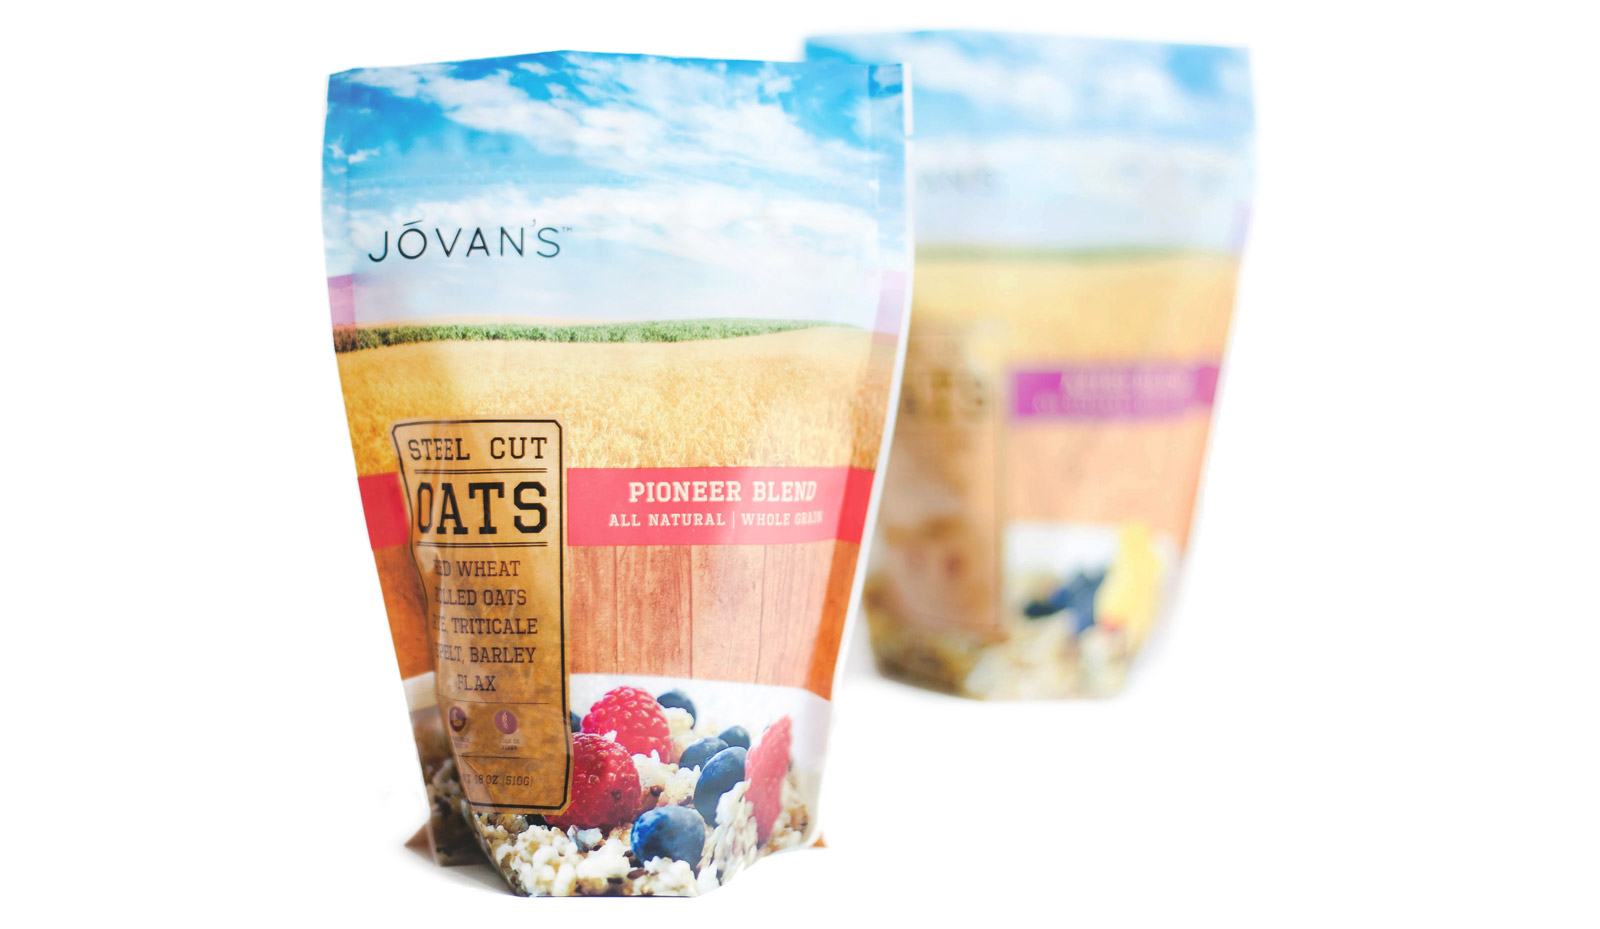 Jovan's Steel Cut Oats